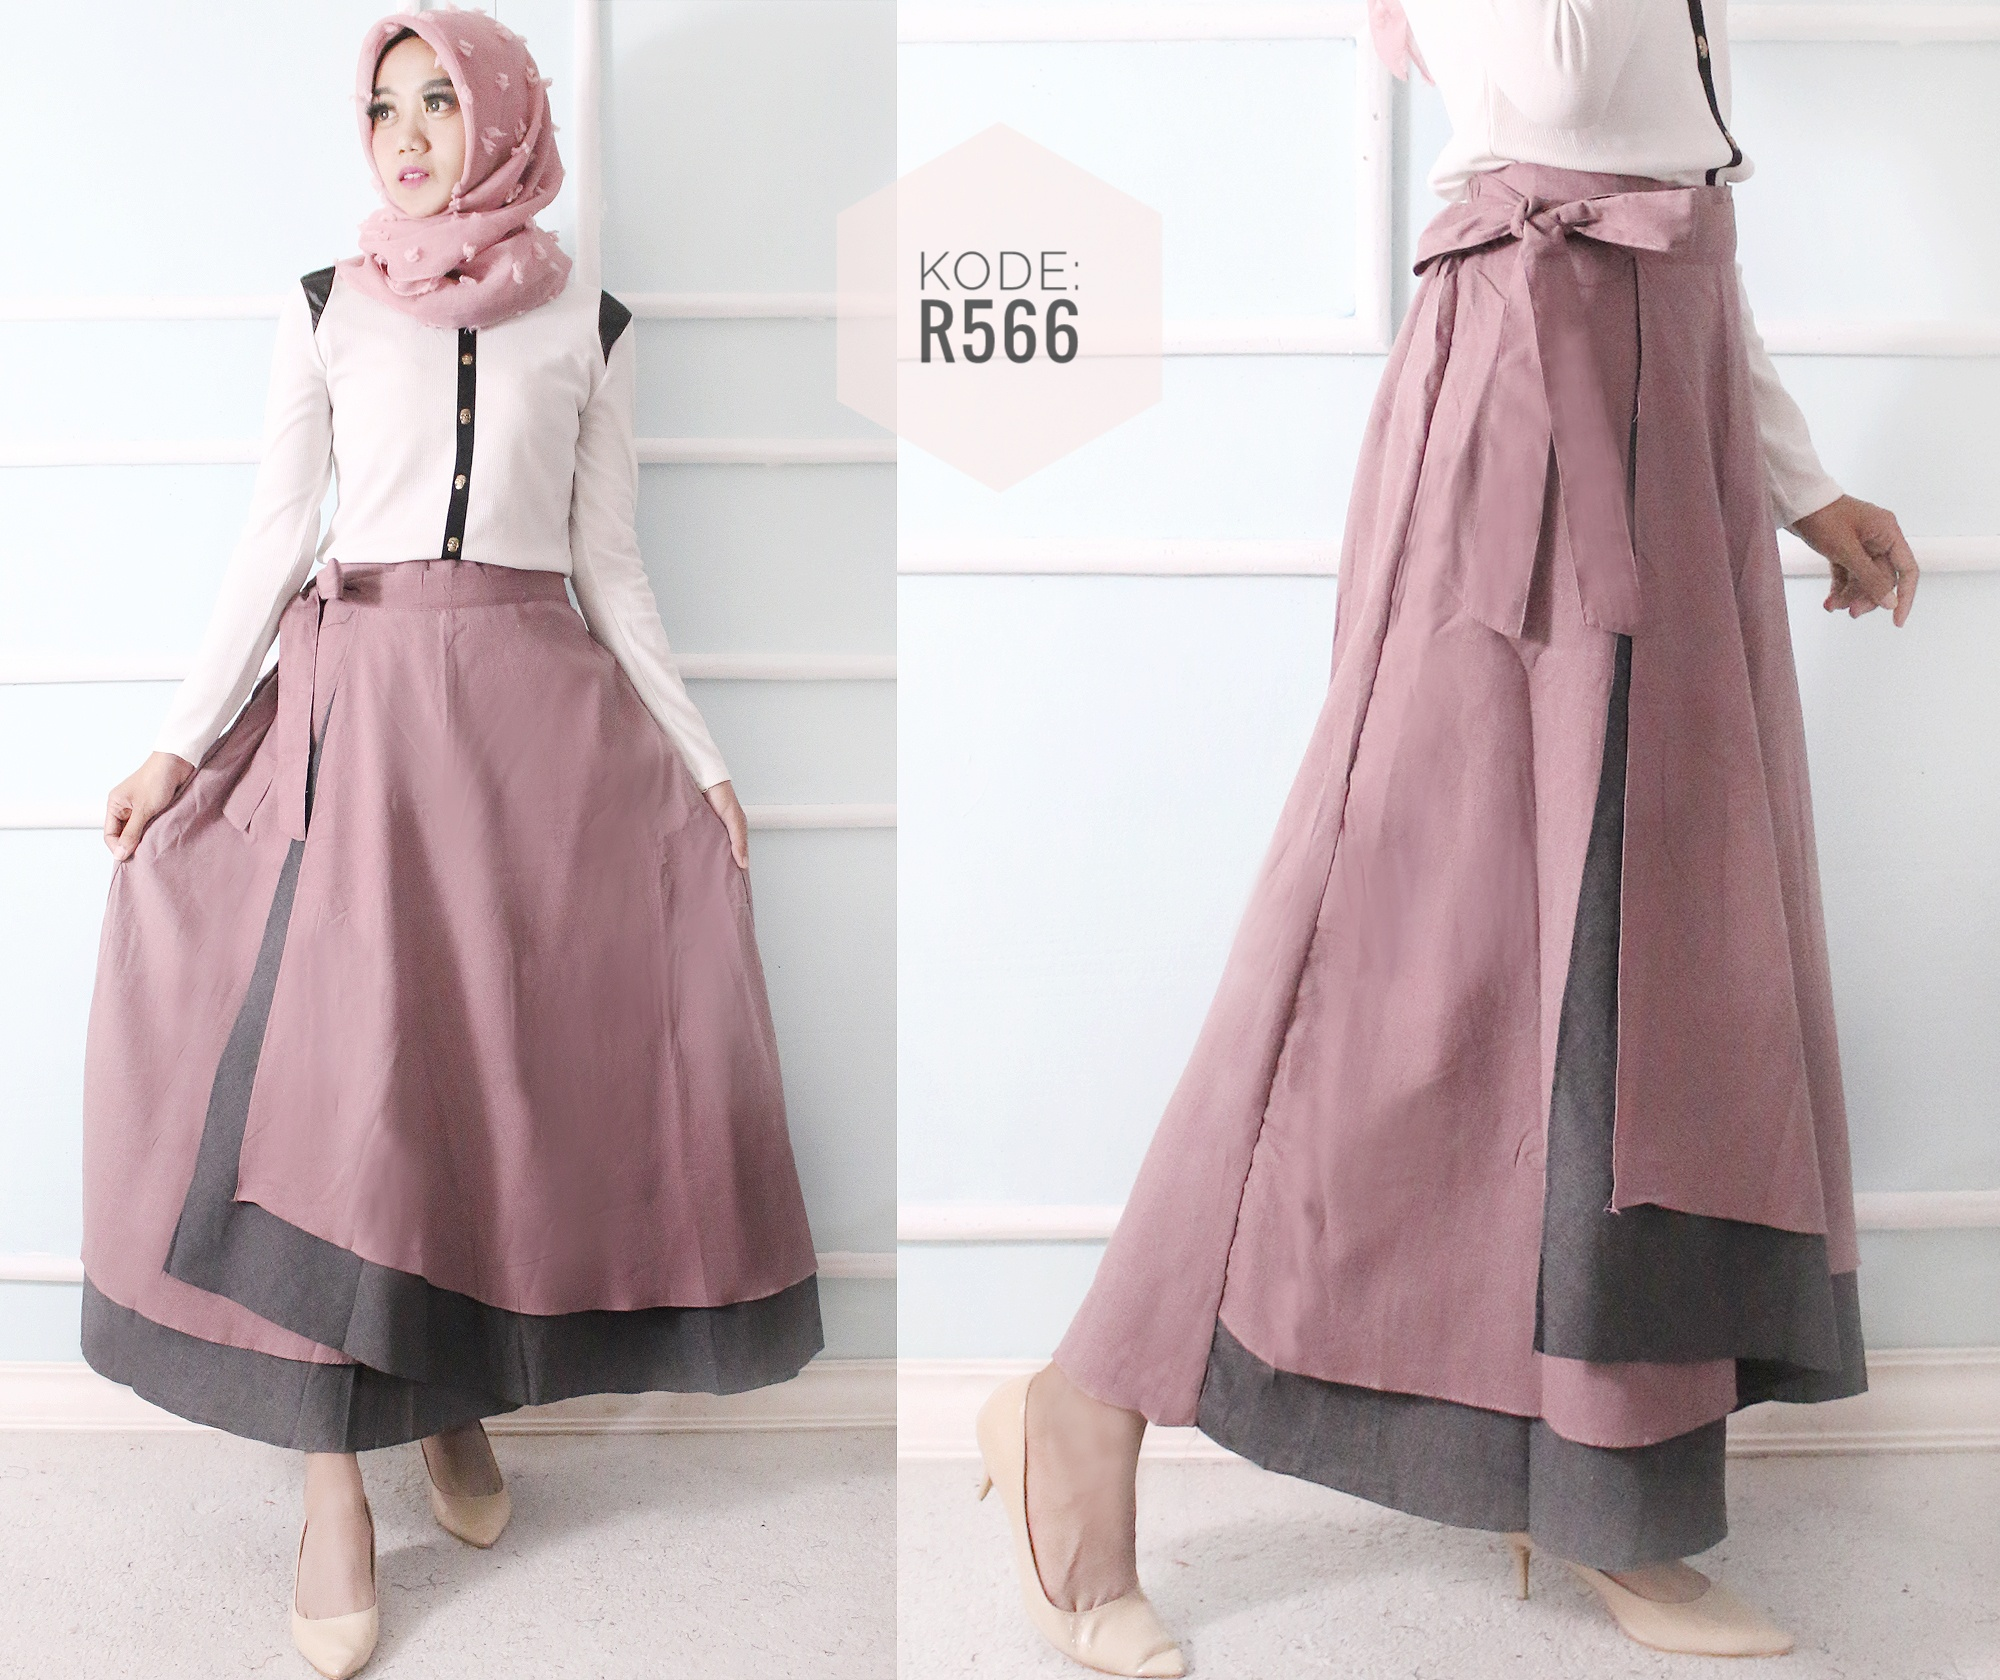 Double Layer Skirt R566